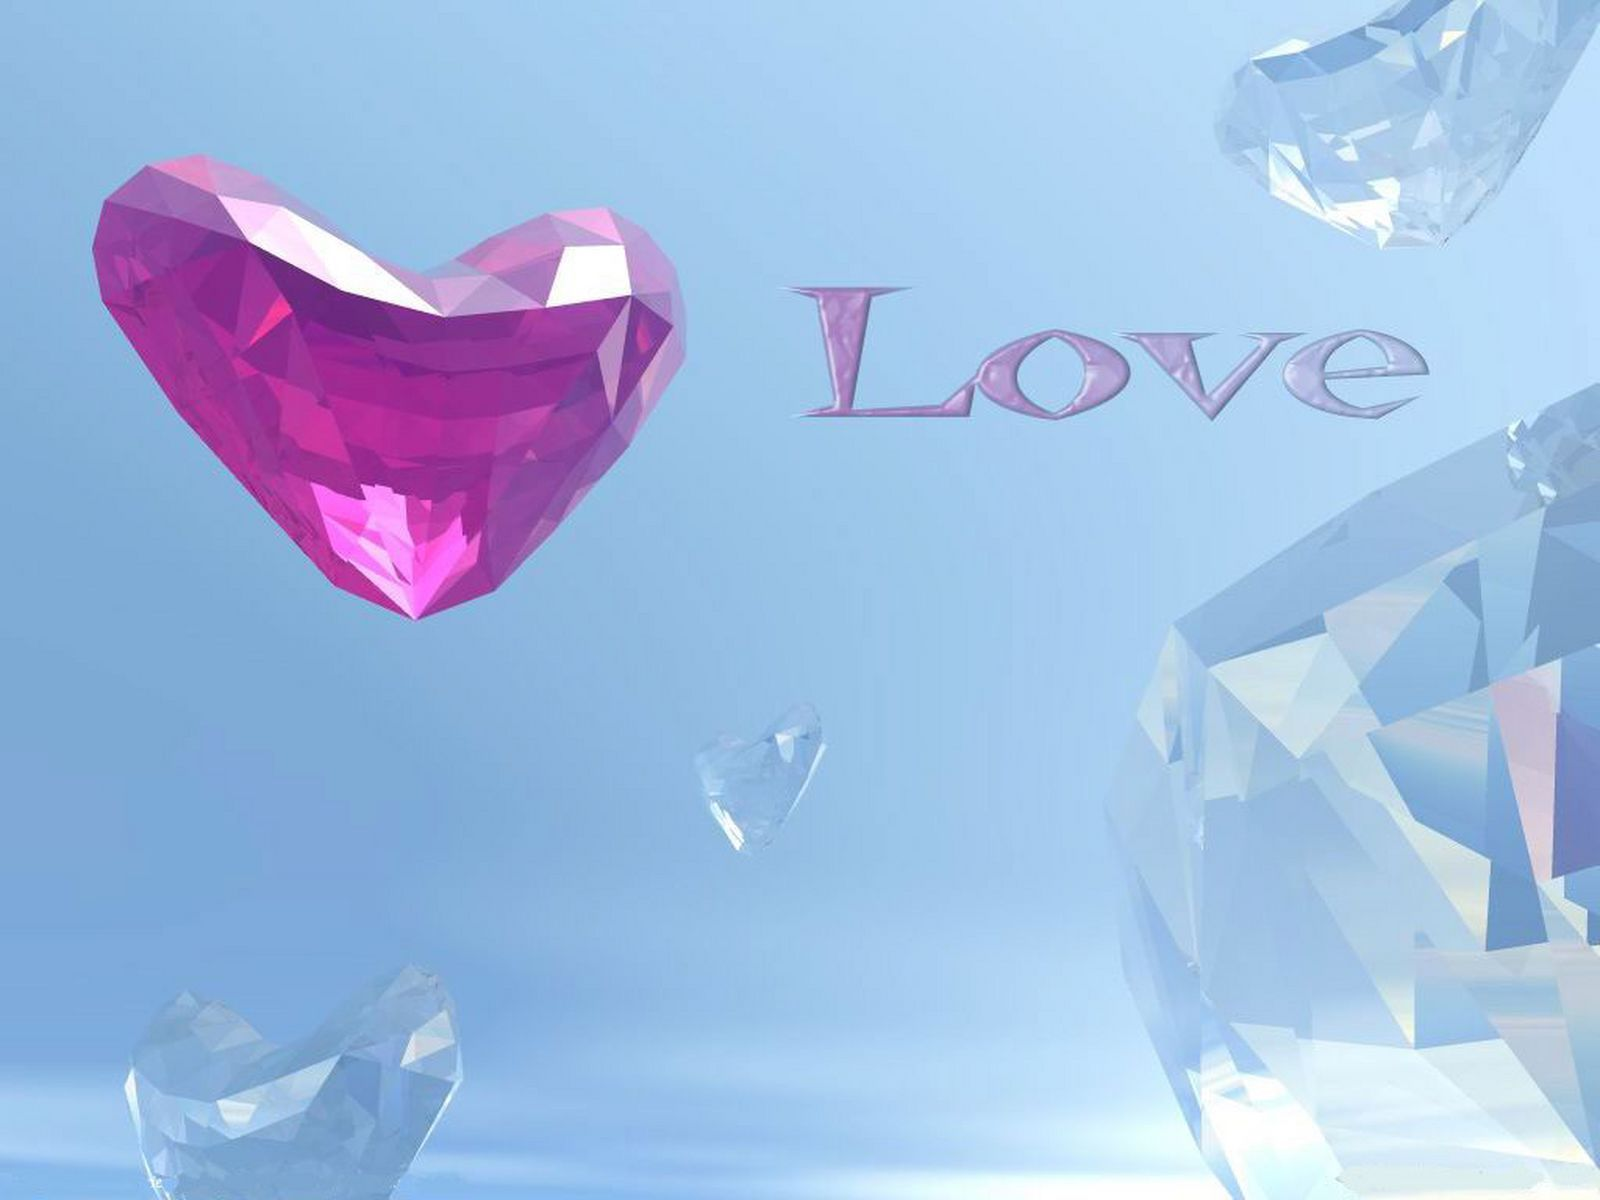 Wallpaper Backgrounds: Cute Heart and Love Wallpapers with ...